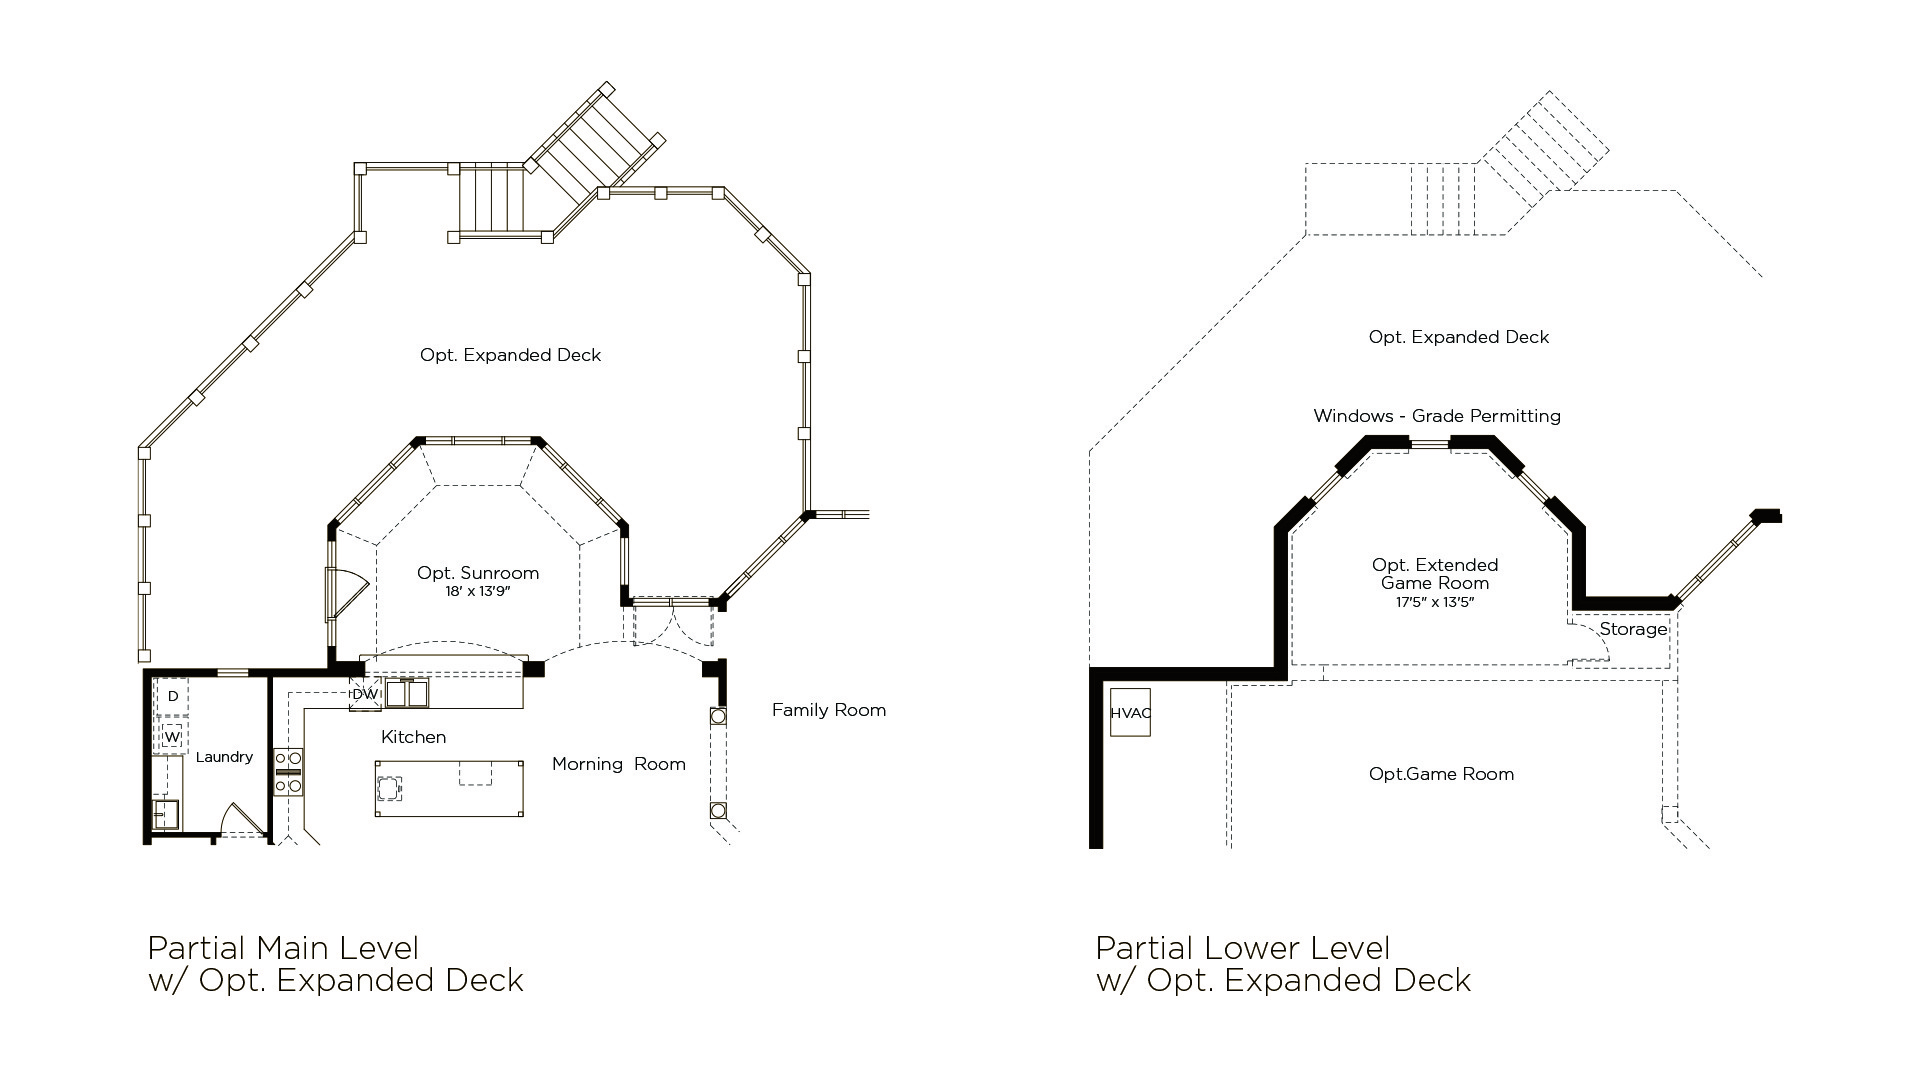 Winthrop - Summerwood Series - Optional Expanded Deck